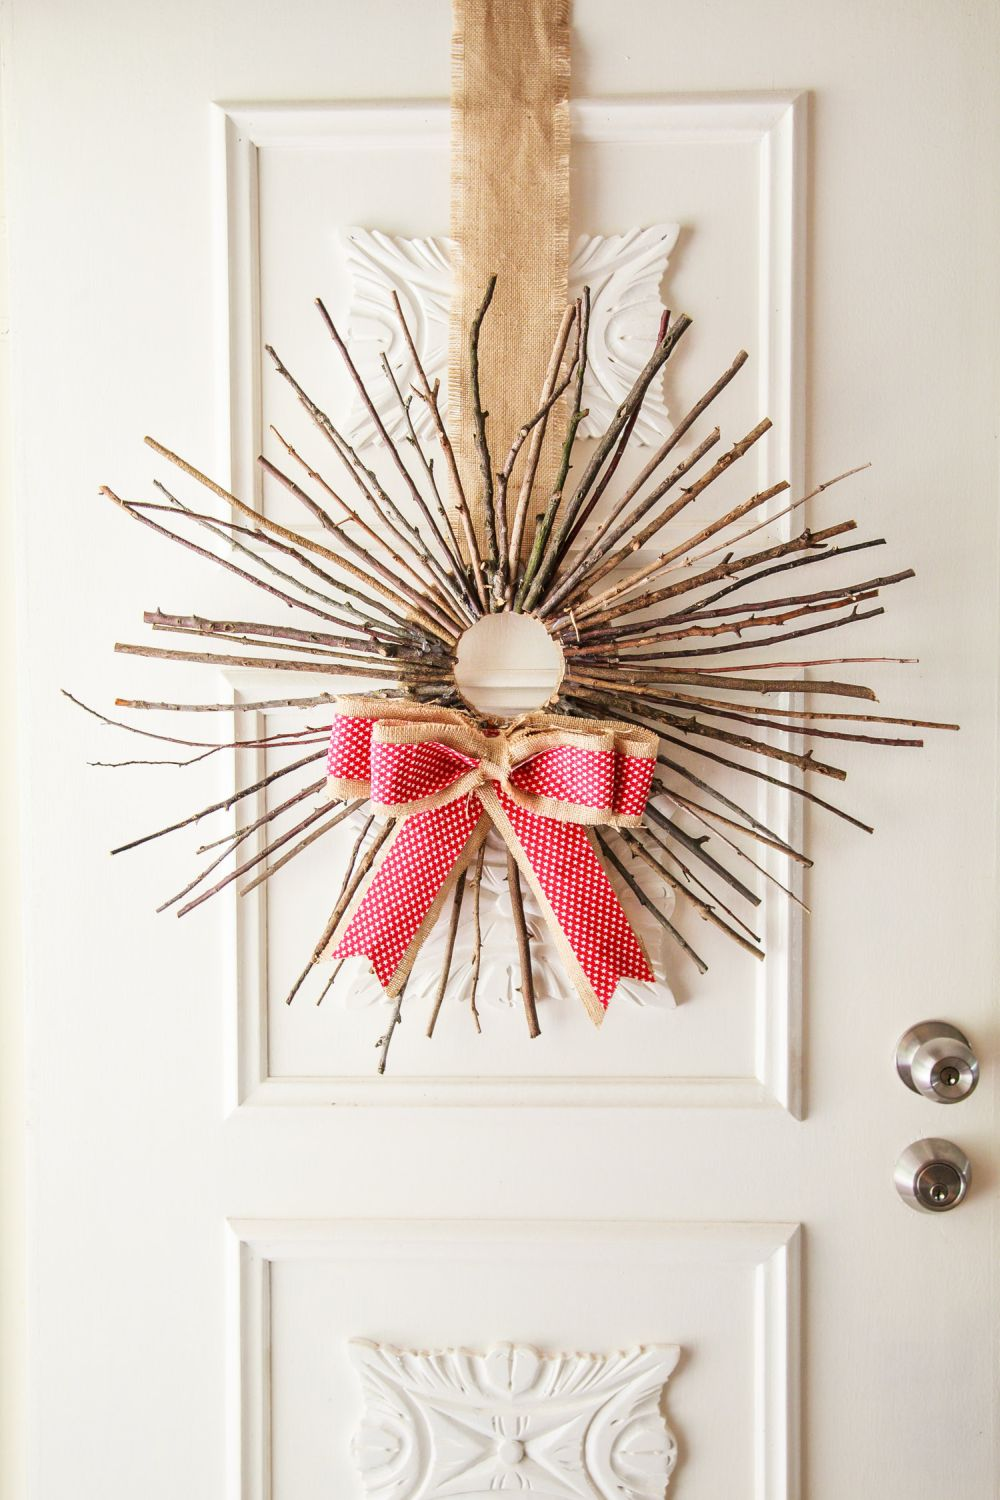 Charming DIY Decorations For A Rustic Christmas images 18